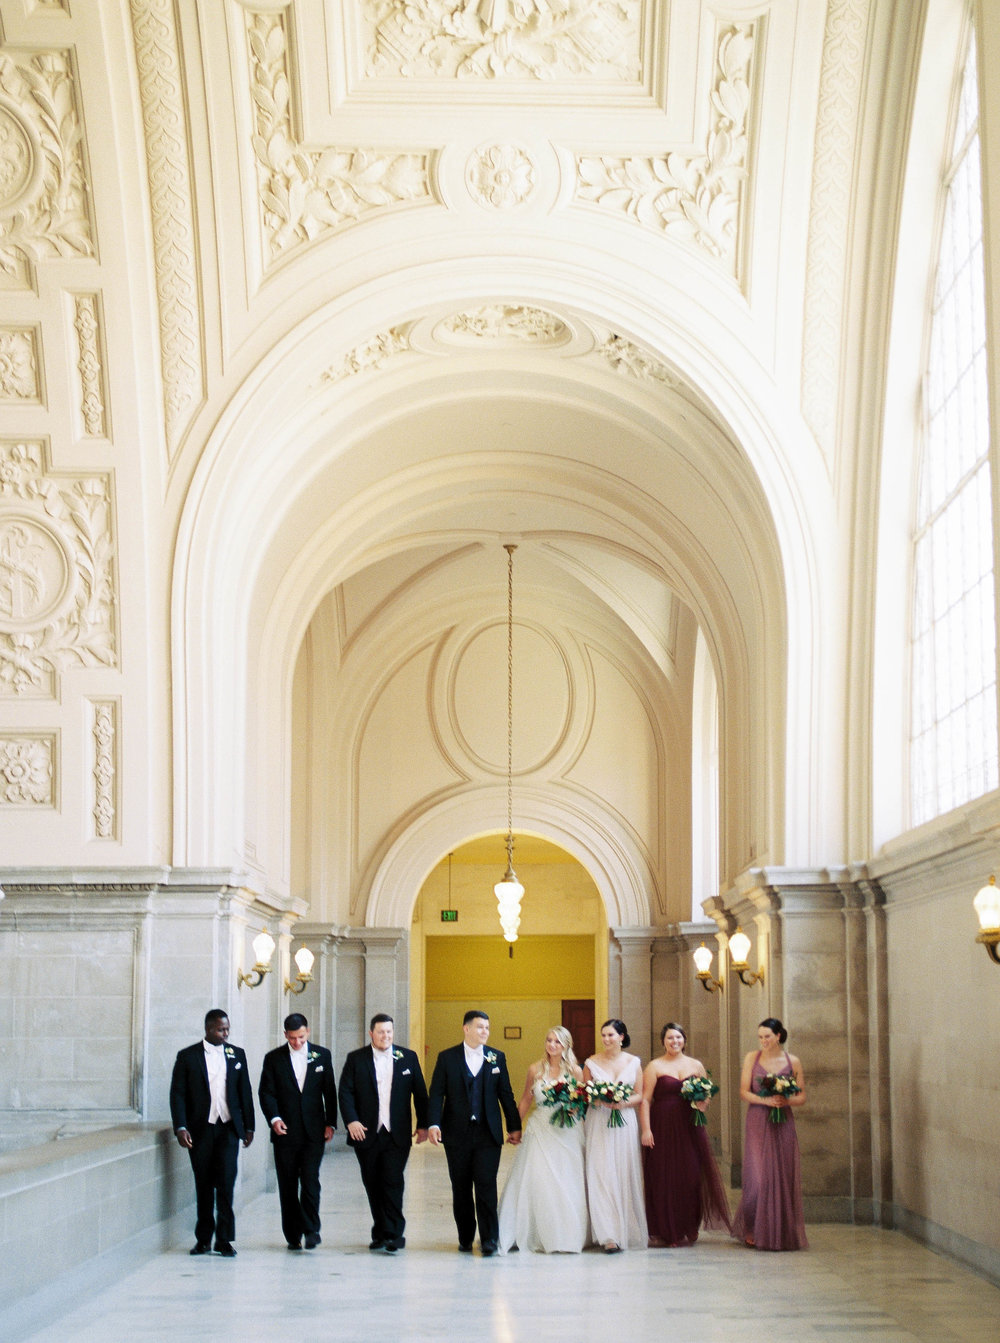 DennisRoyCoronel_Photography_SanFranciscoCityHall_Wedding-48.jpg